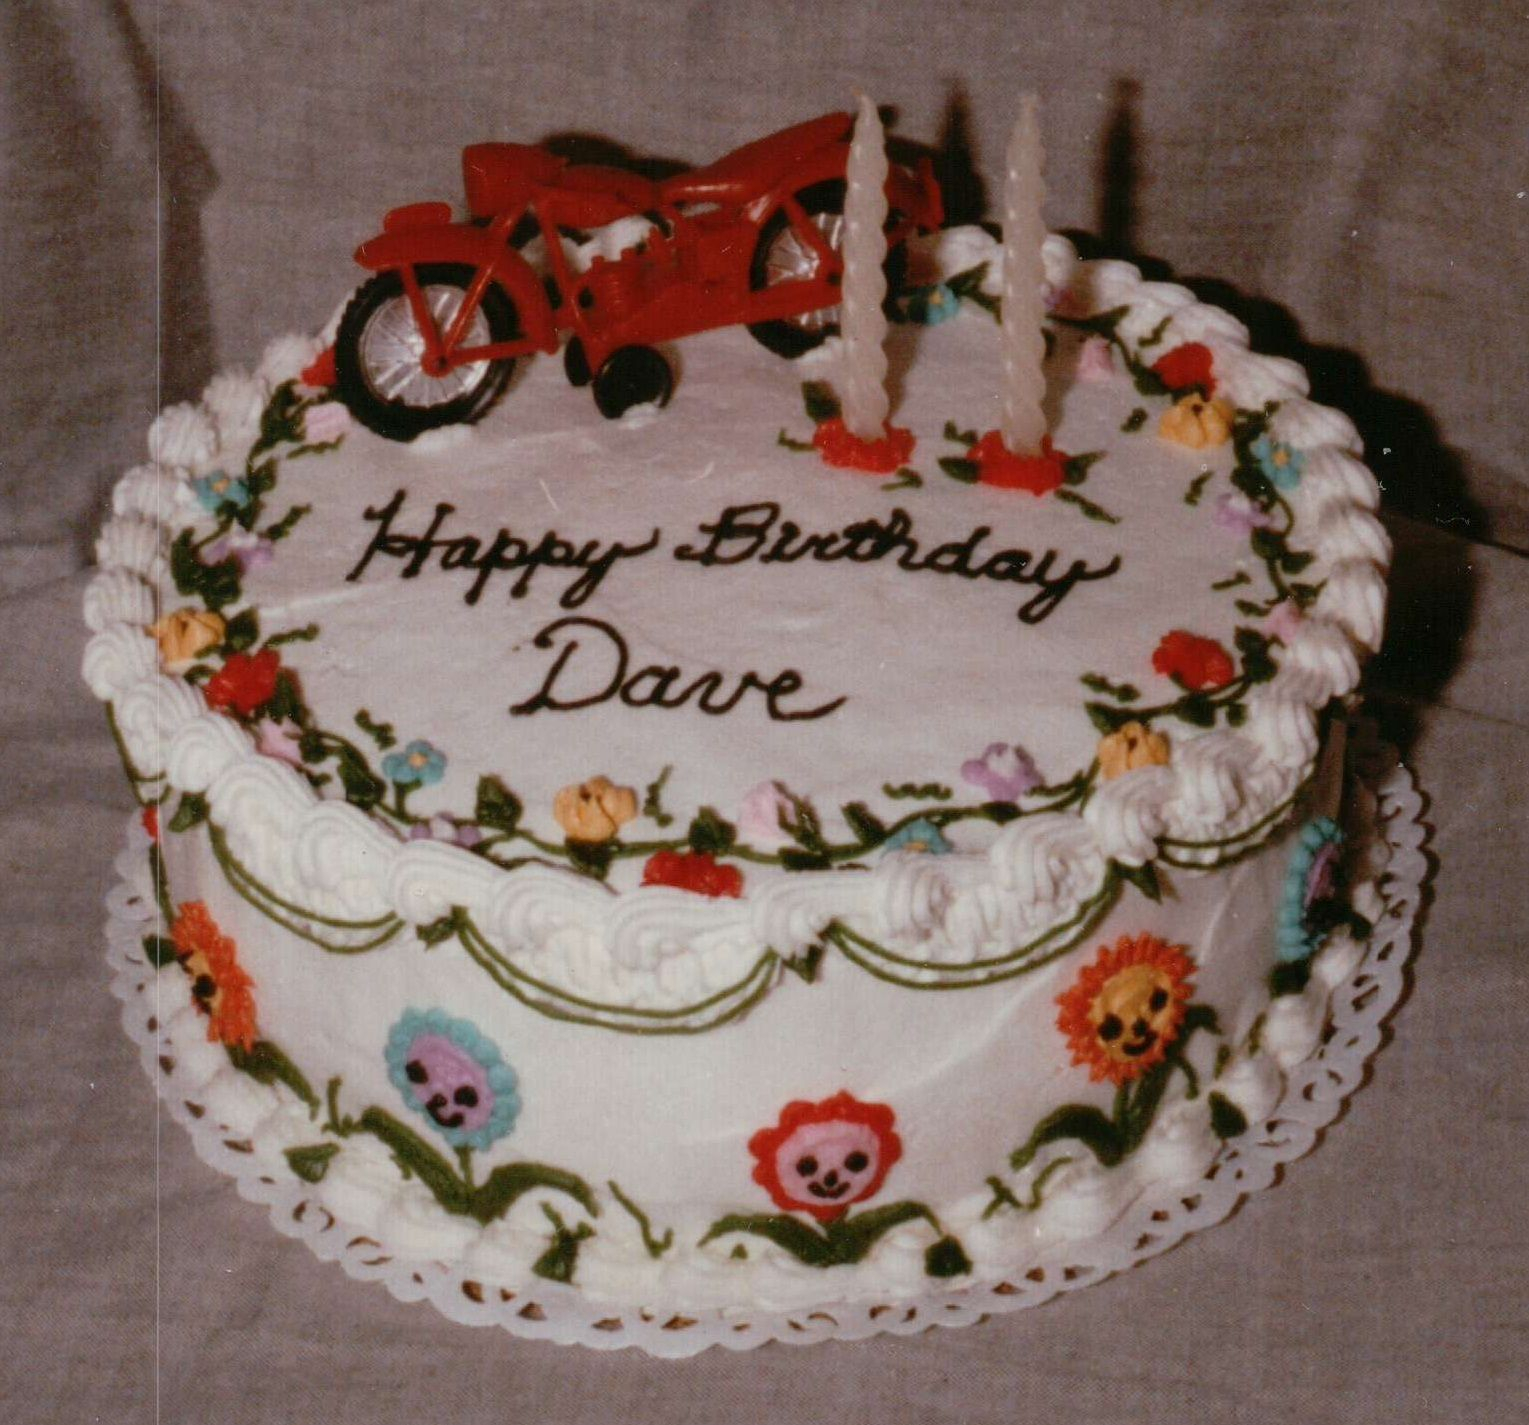 Happy Birthday Carol Cake Happy Birthday Dave Happy Birthday To You Happy Birthday